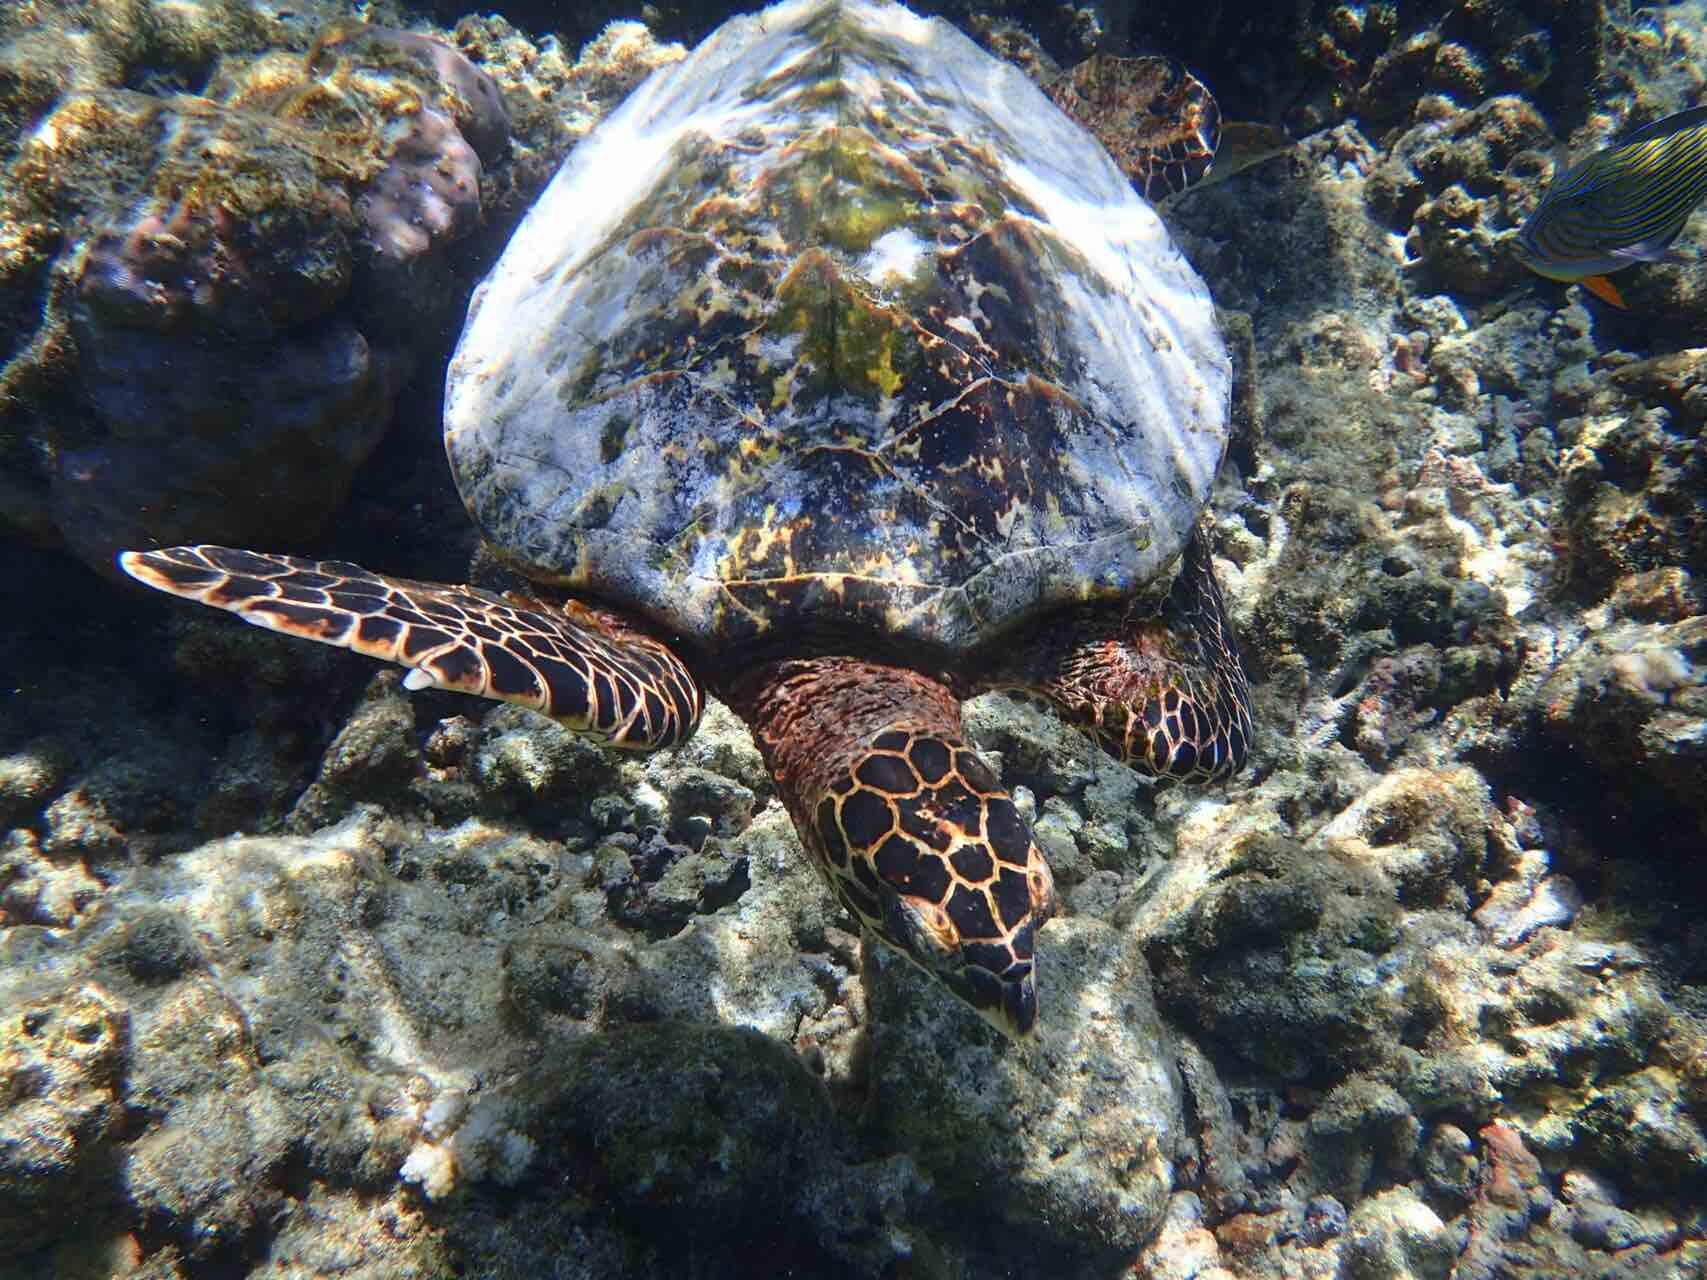 maldives-oblu-by-atmosphere-at-helengeli-sea-turtle-holiday-review-feedback-invite-to-paradise-quentin-kate-hulm.jpg